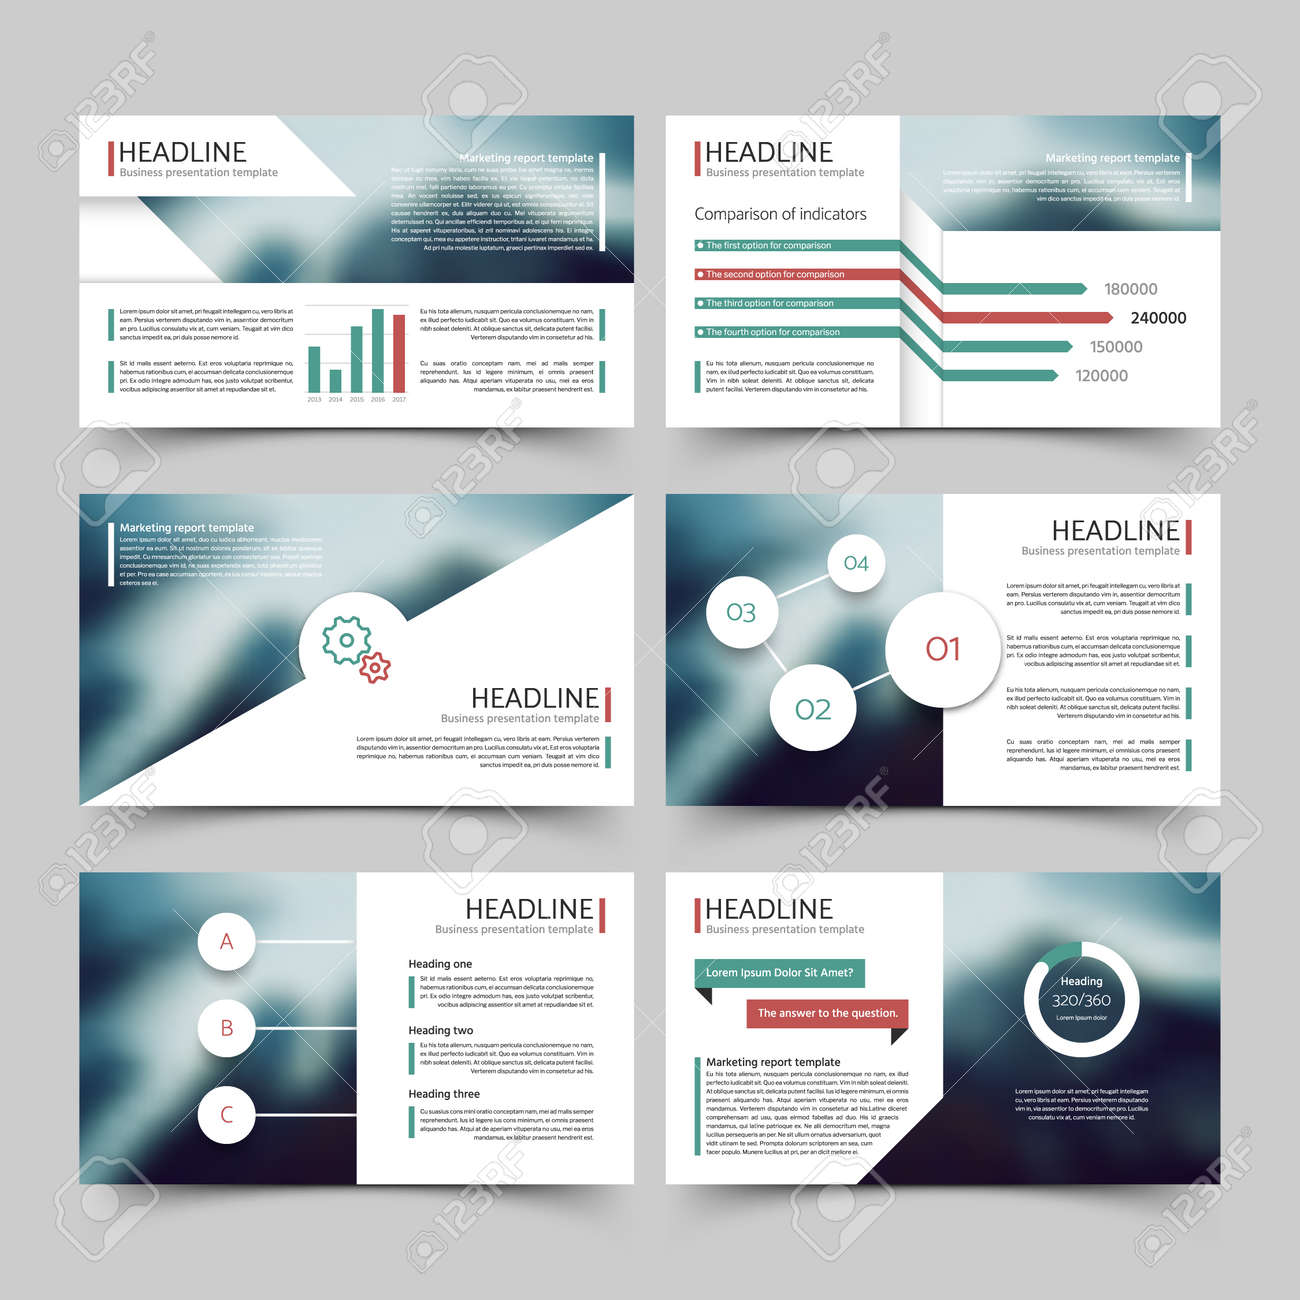 Business presentation corporate marketing report vector templates with diagrams and charts infographics elements. Brochure for presentation, business infographic and chart illustration - 166825054